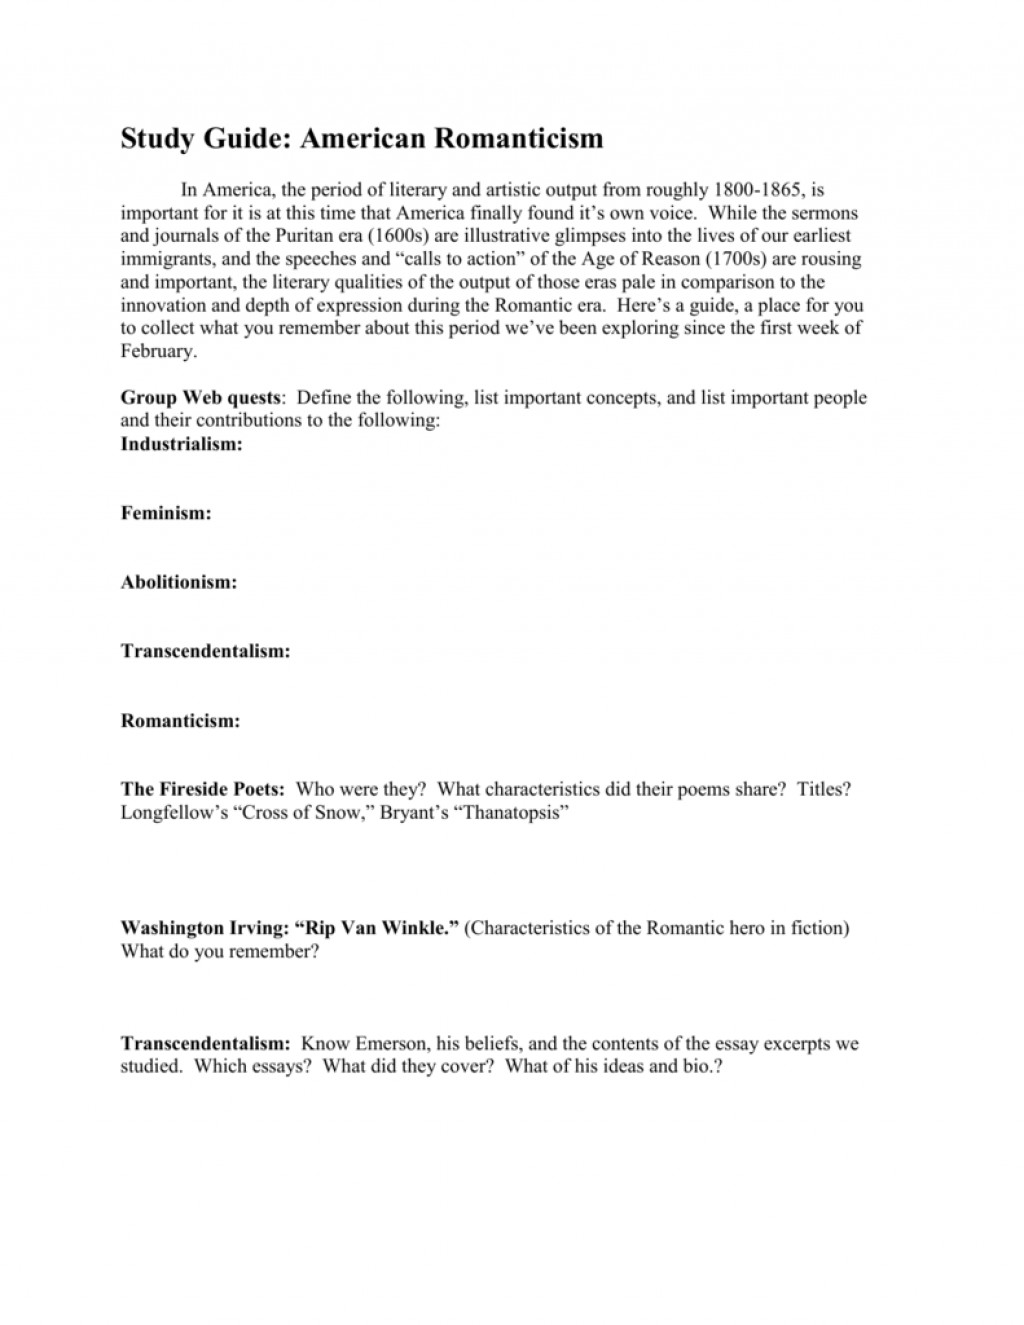 006 Essay Example 008030868 1 Unbelievable Romanticism Conclusion Topics American Questions Large